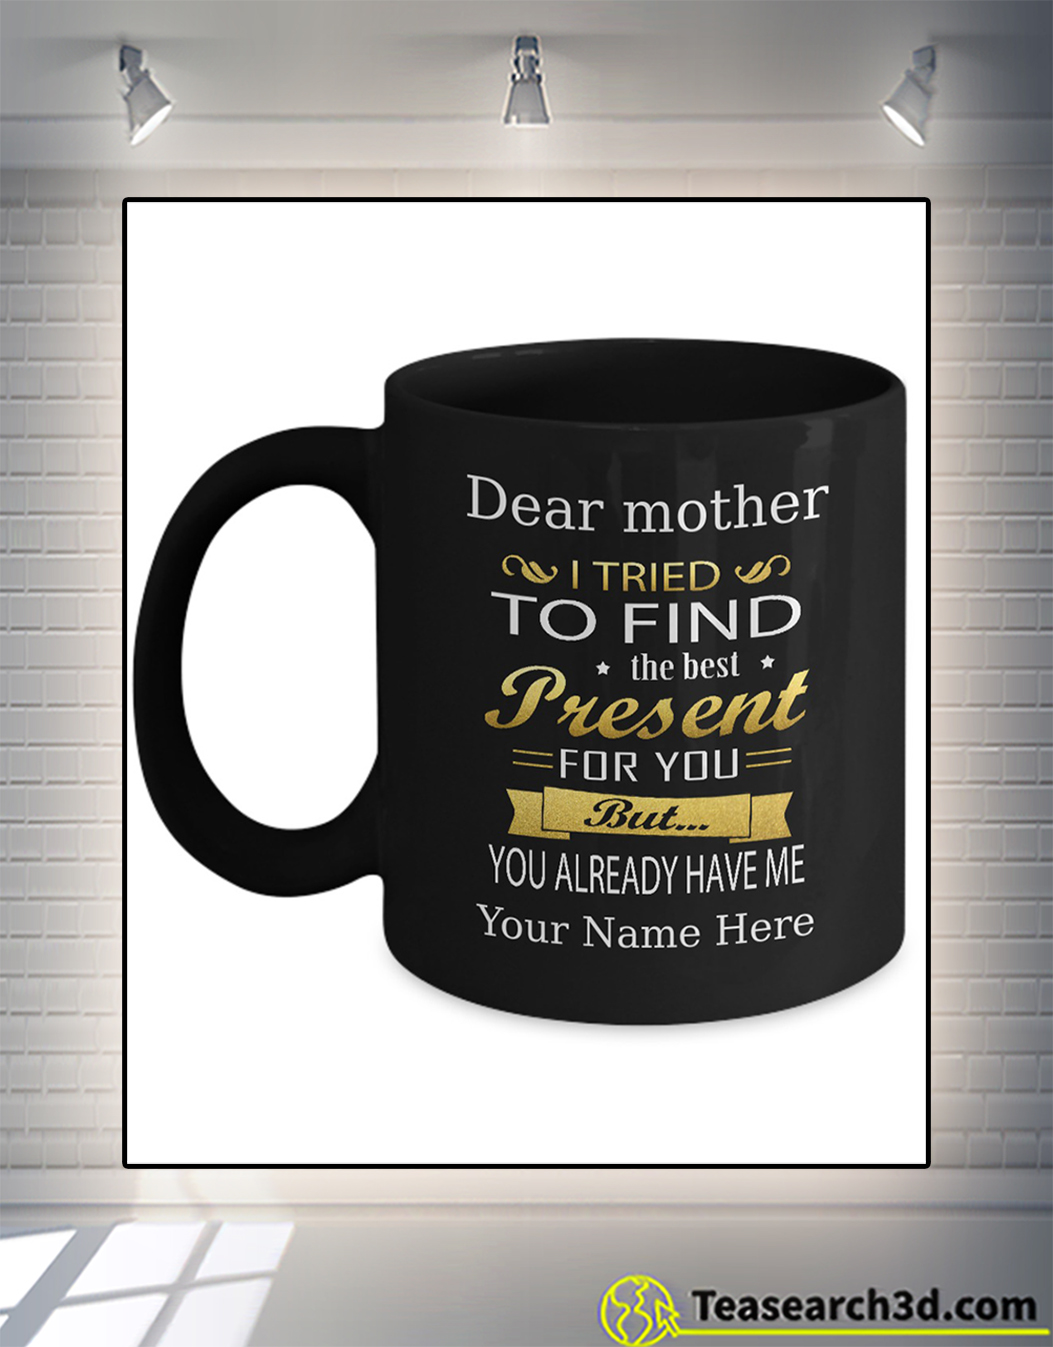 Personalized custom name dear mother I tried to find the best present for you mug